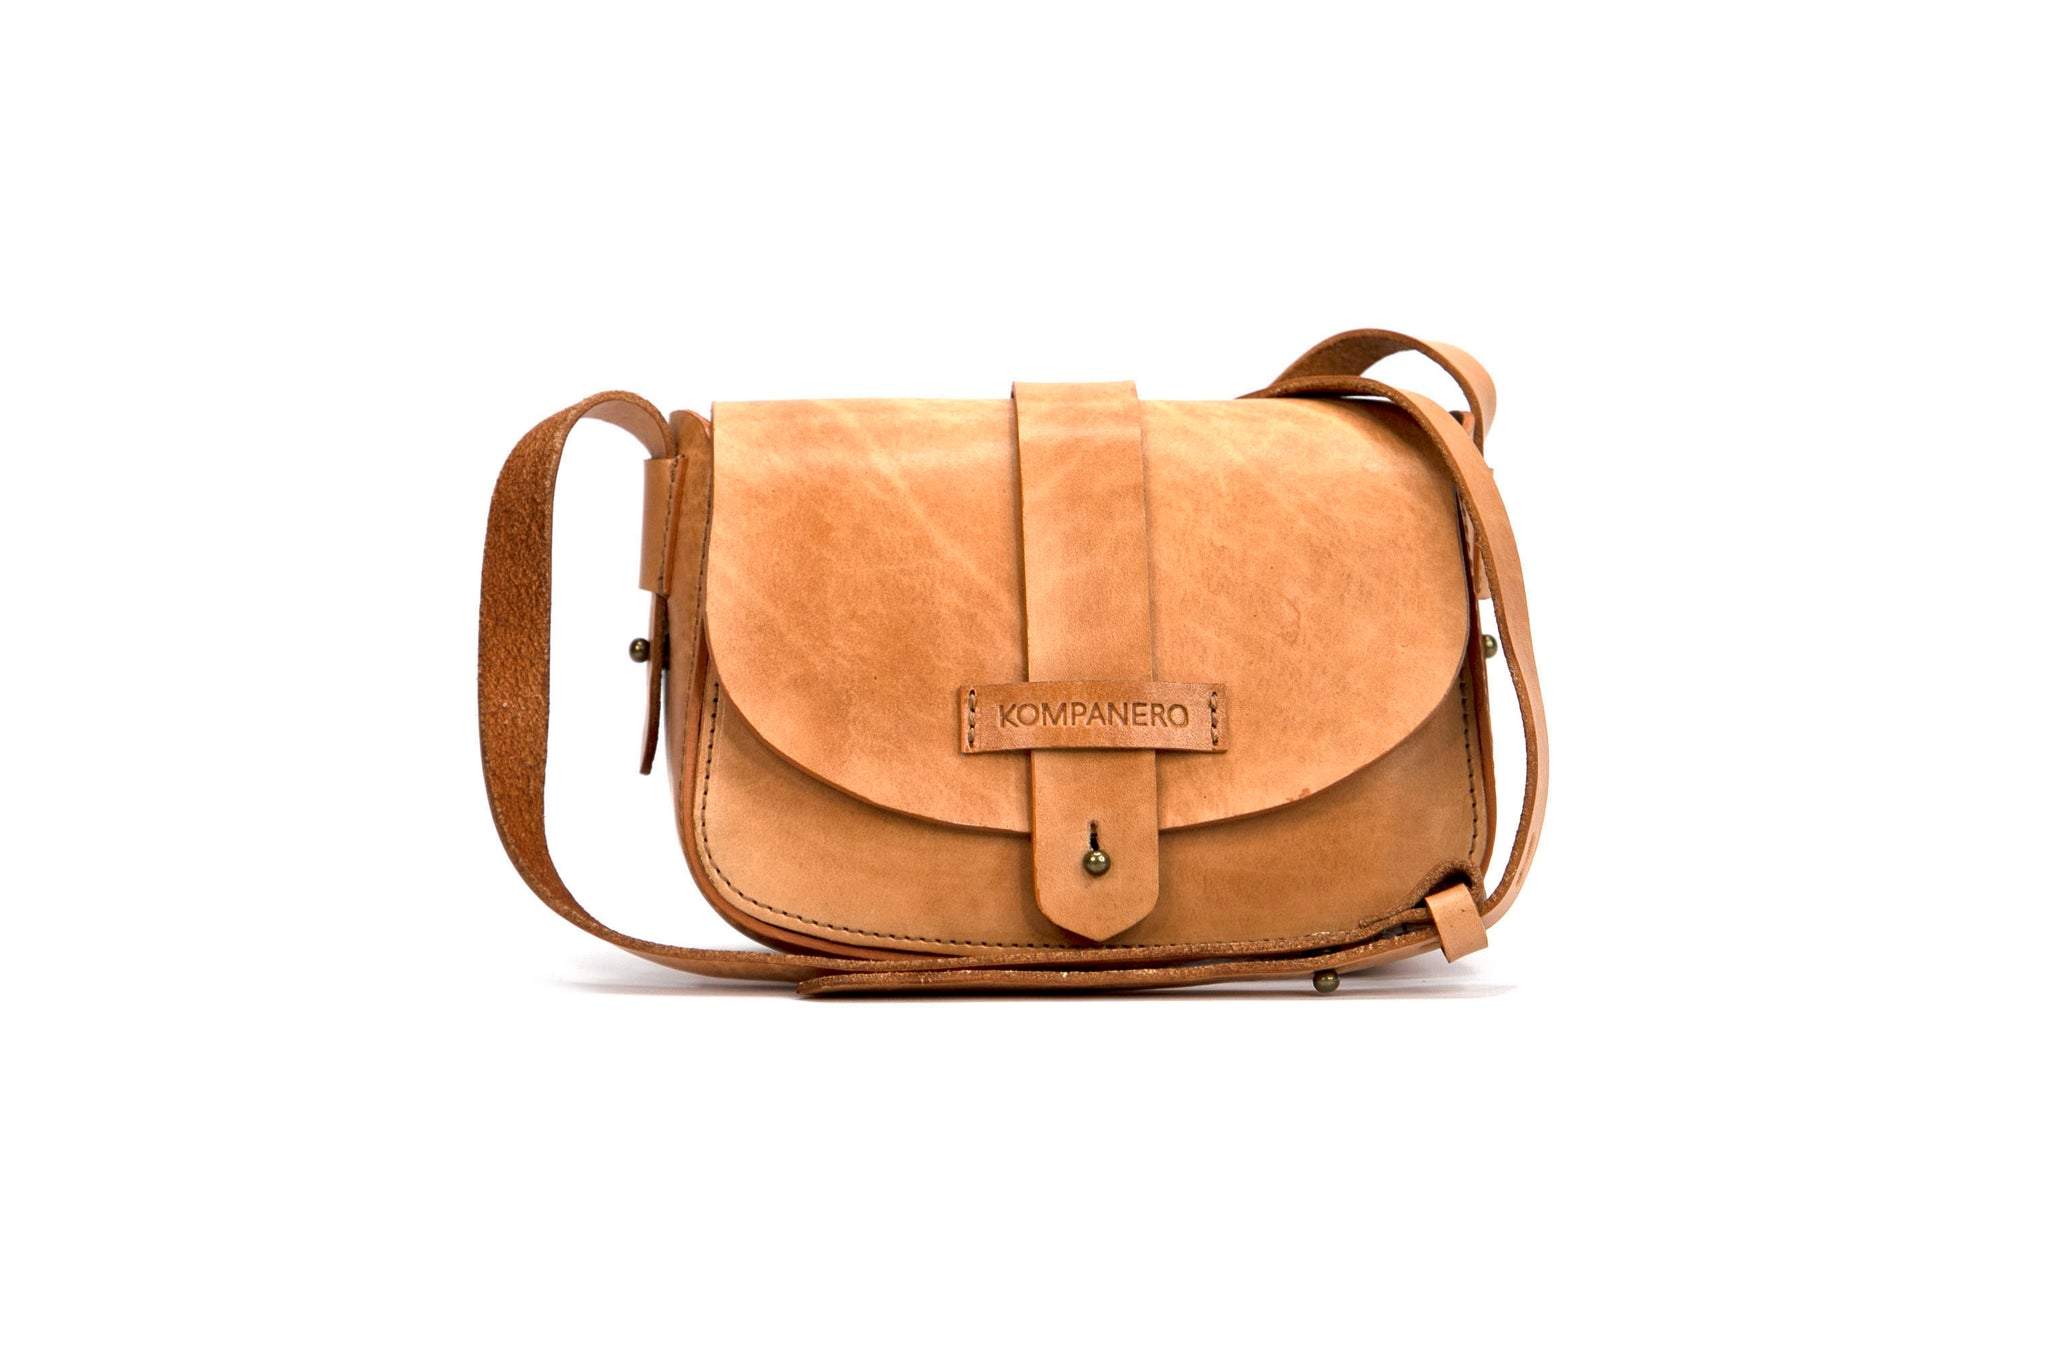 Indiana crossbody handbag